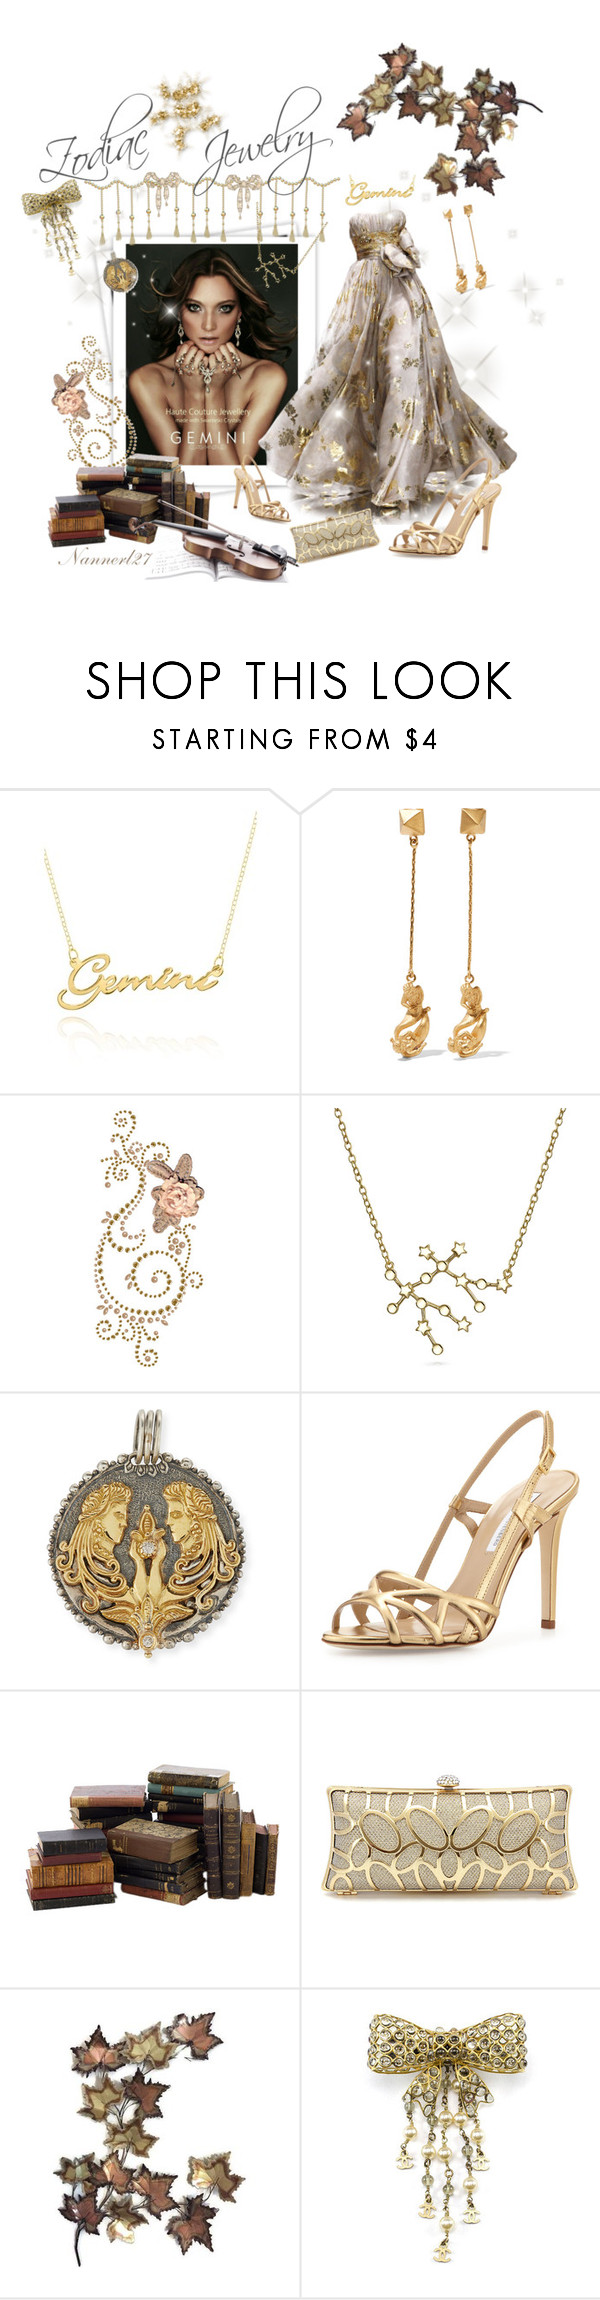 """Gemini for ever..."" by nannerl27forever ❤ liked on Polyvore featuring GALA, Zuhair Murad, Belk & Co., Valentino, Bling Jewelry, Konstantino, Diane Von Furstenberg and Chanel"